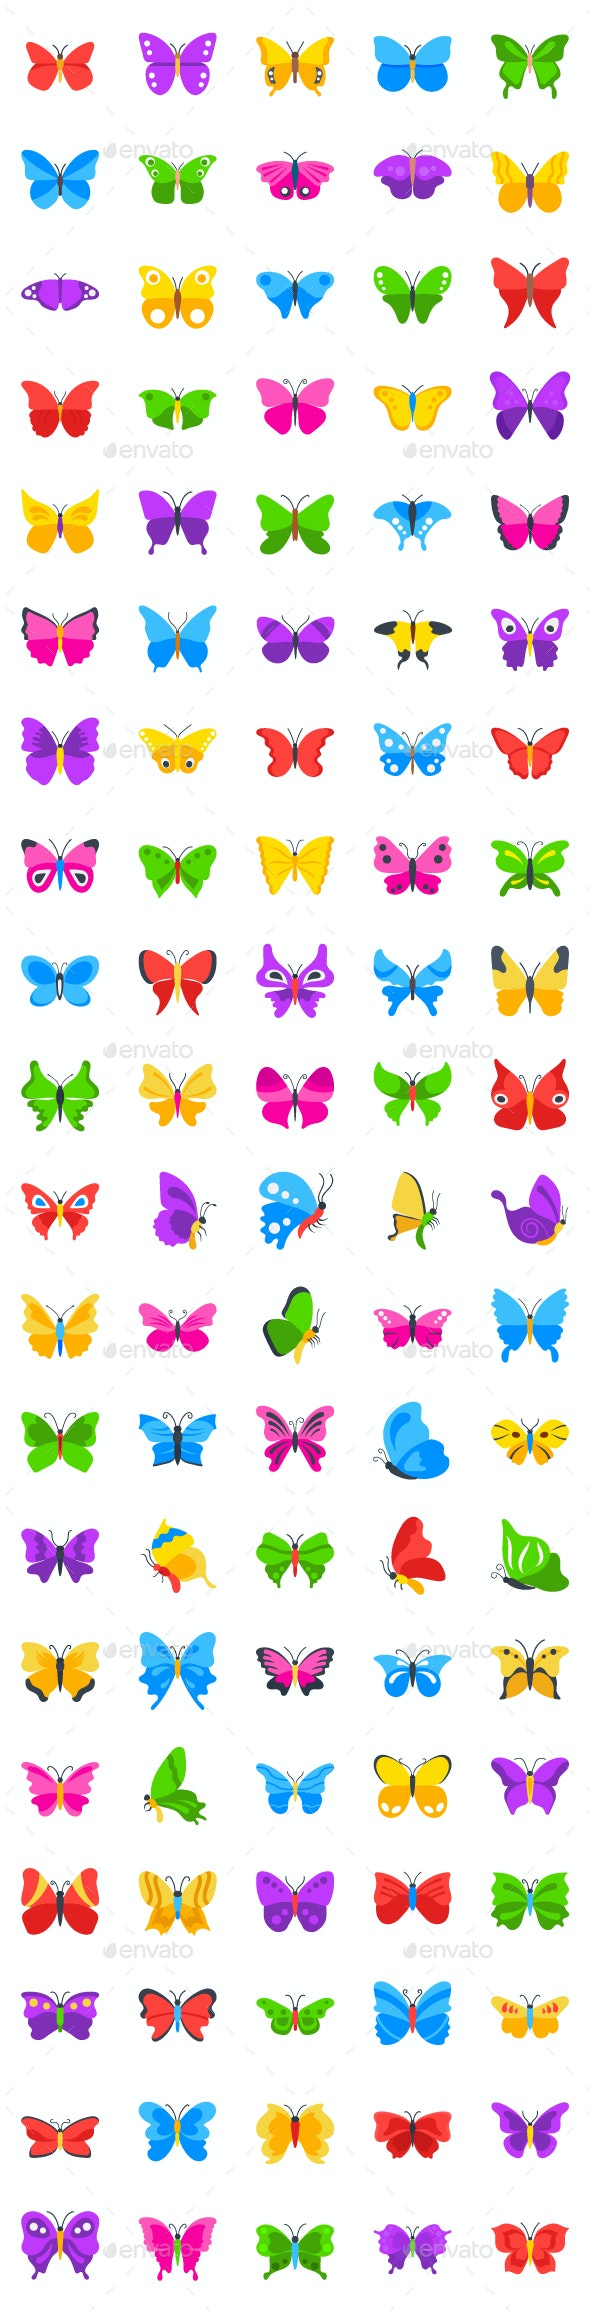 100 Flat Butterfly Vector Icons - Animals Characters